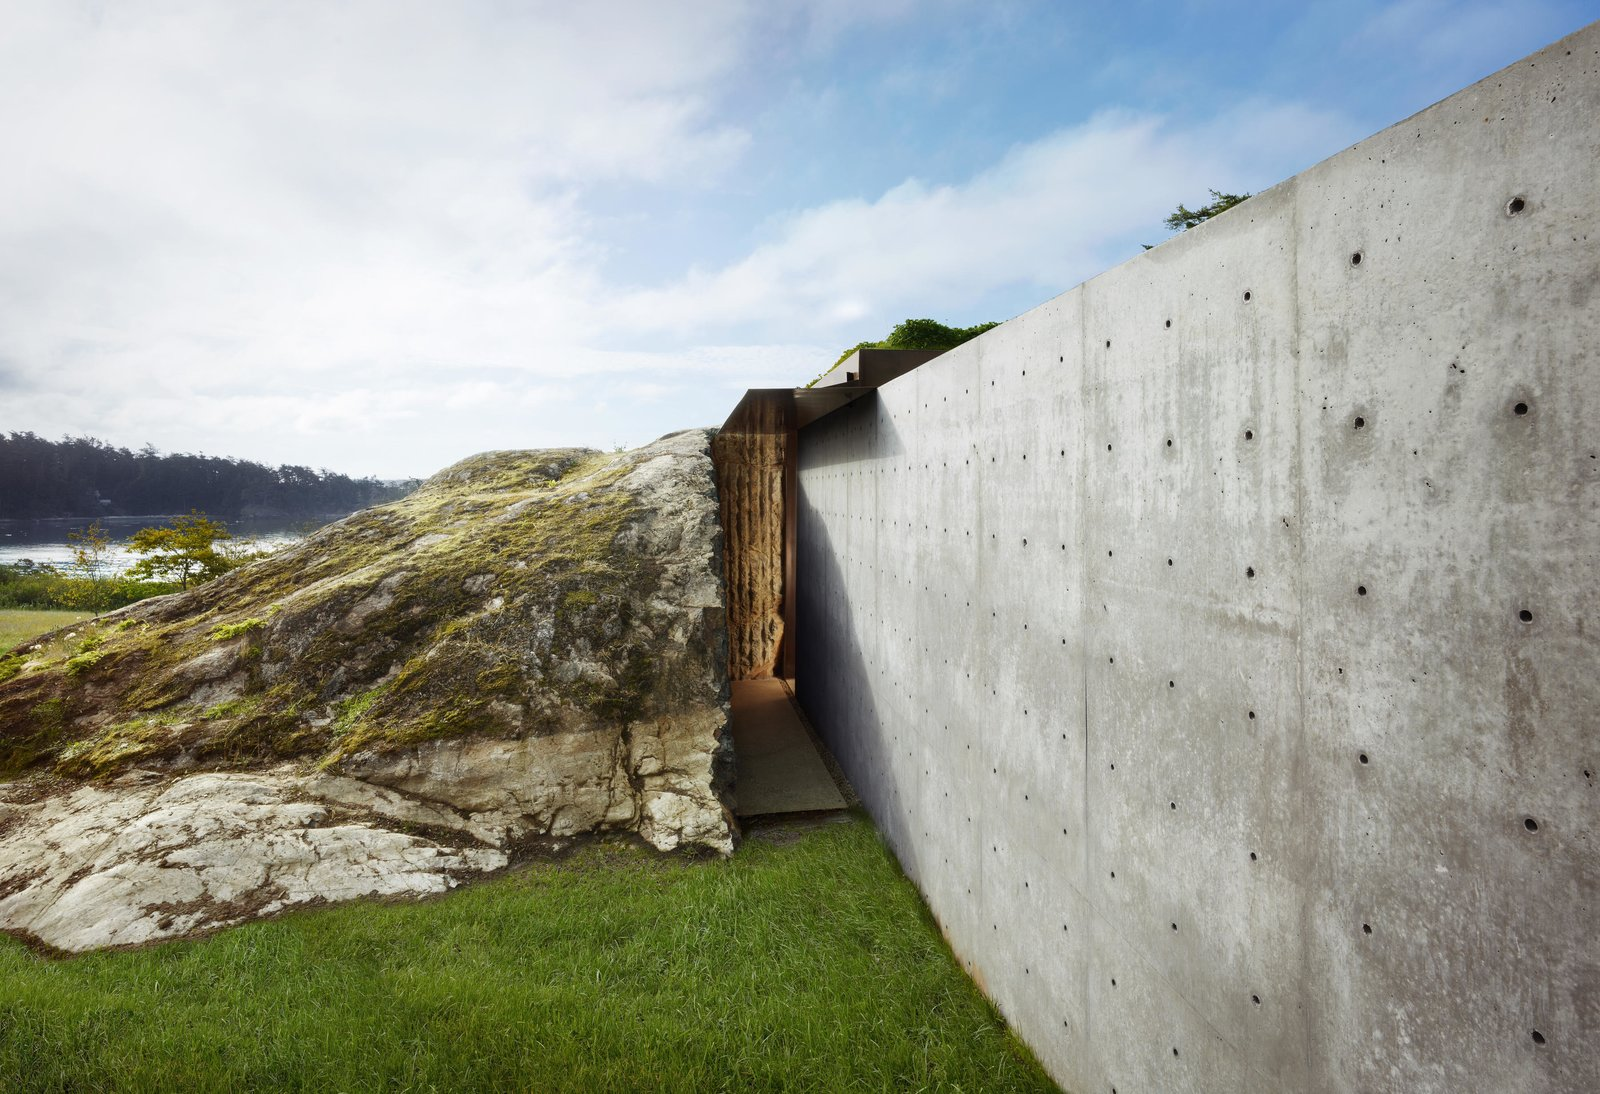 The Pierre | Olson Kundig Tagged: Outdoor, Grass, and Boulders.  The Pierre by Olson Kundig